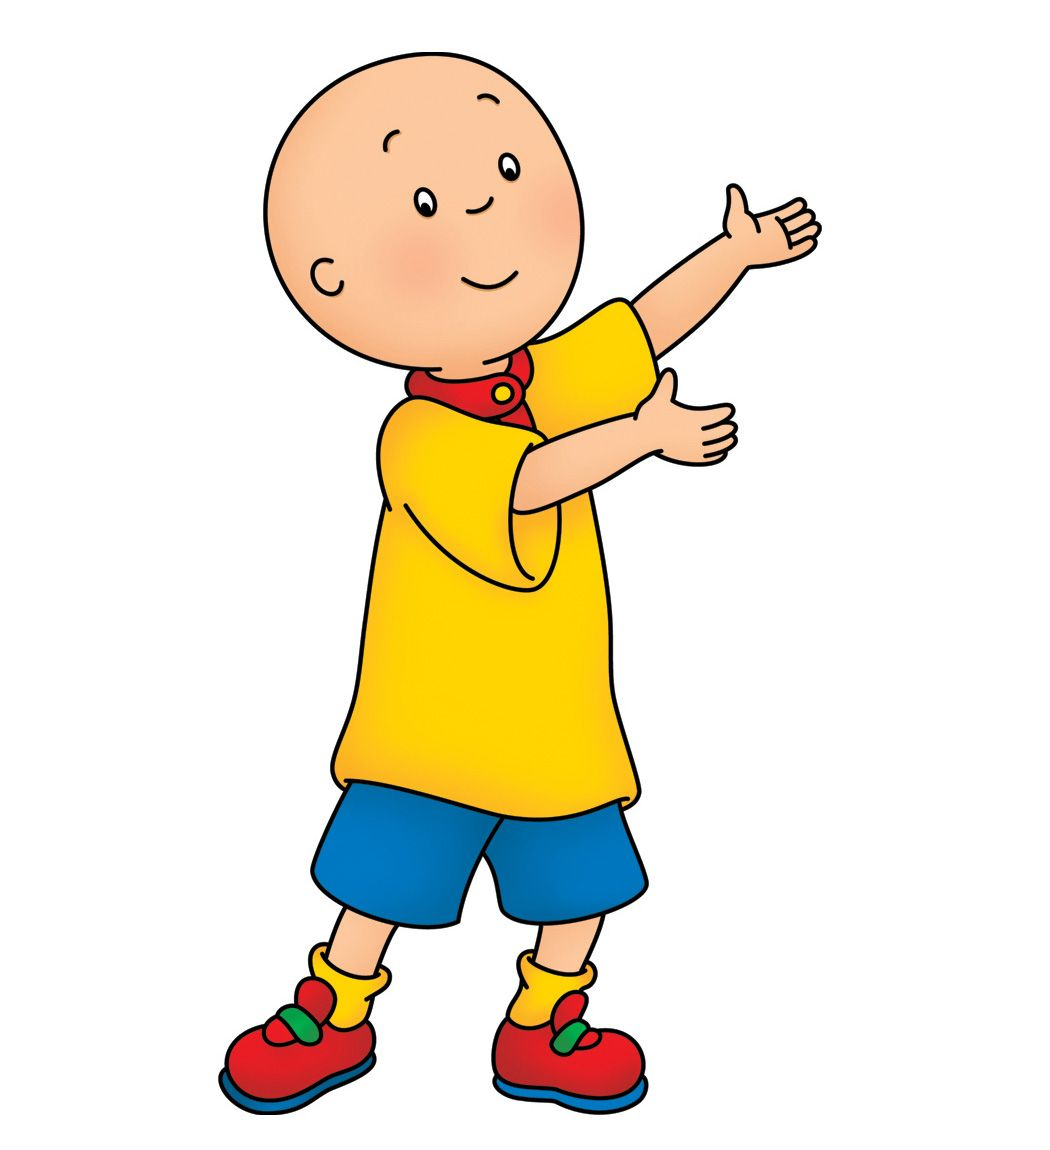 Caillou Character